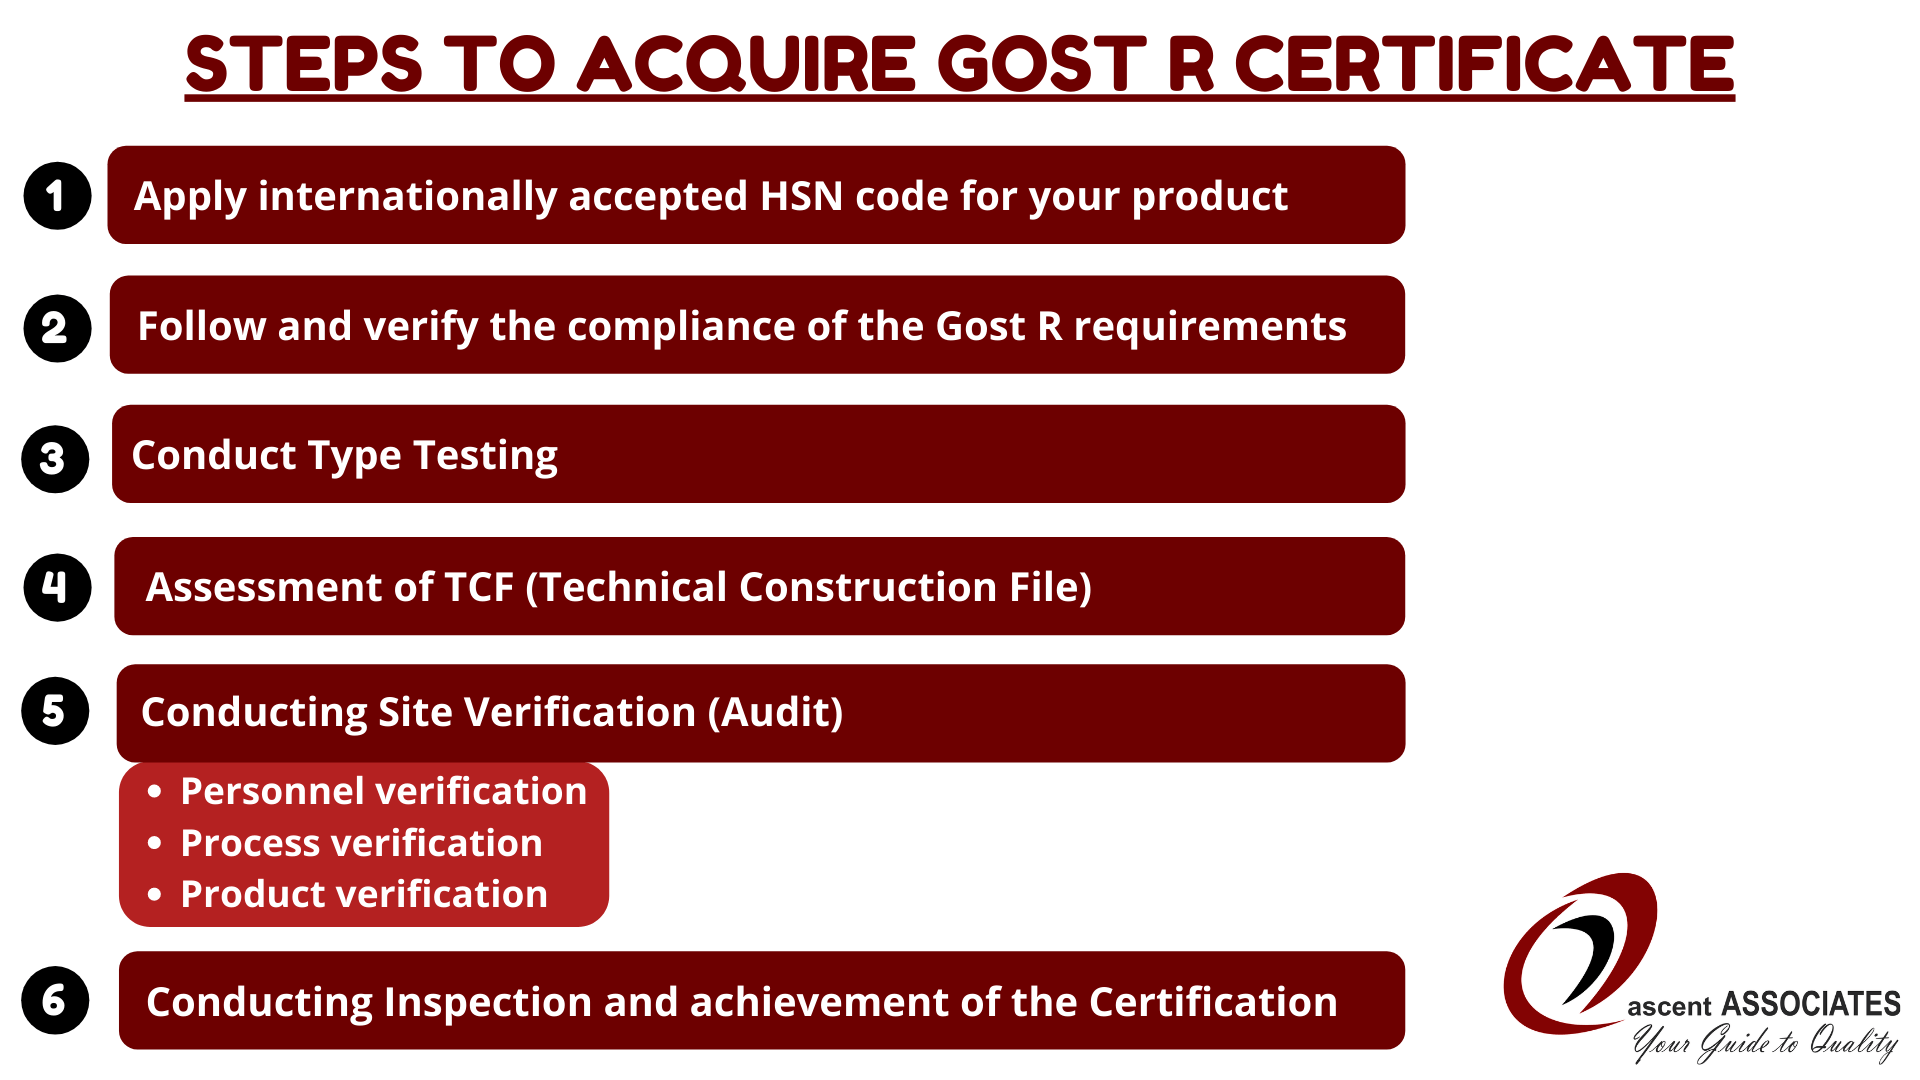 Steps to acquire Gost R Certificate